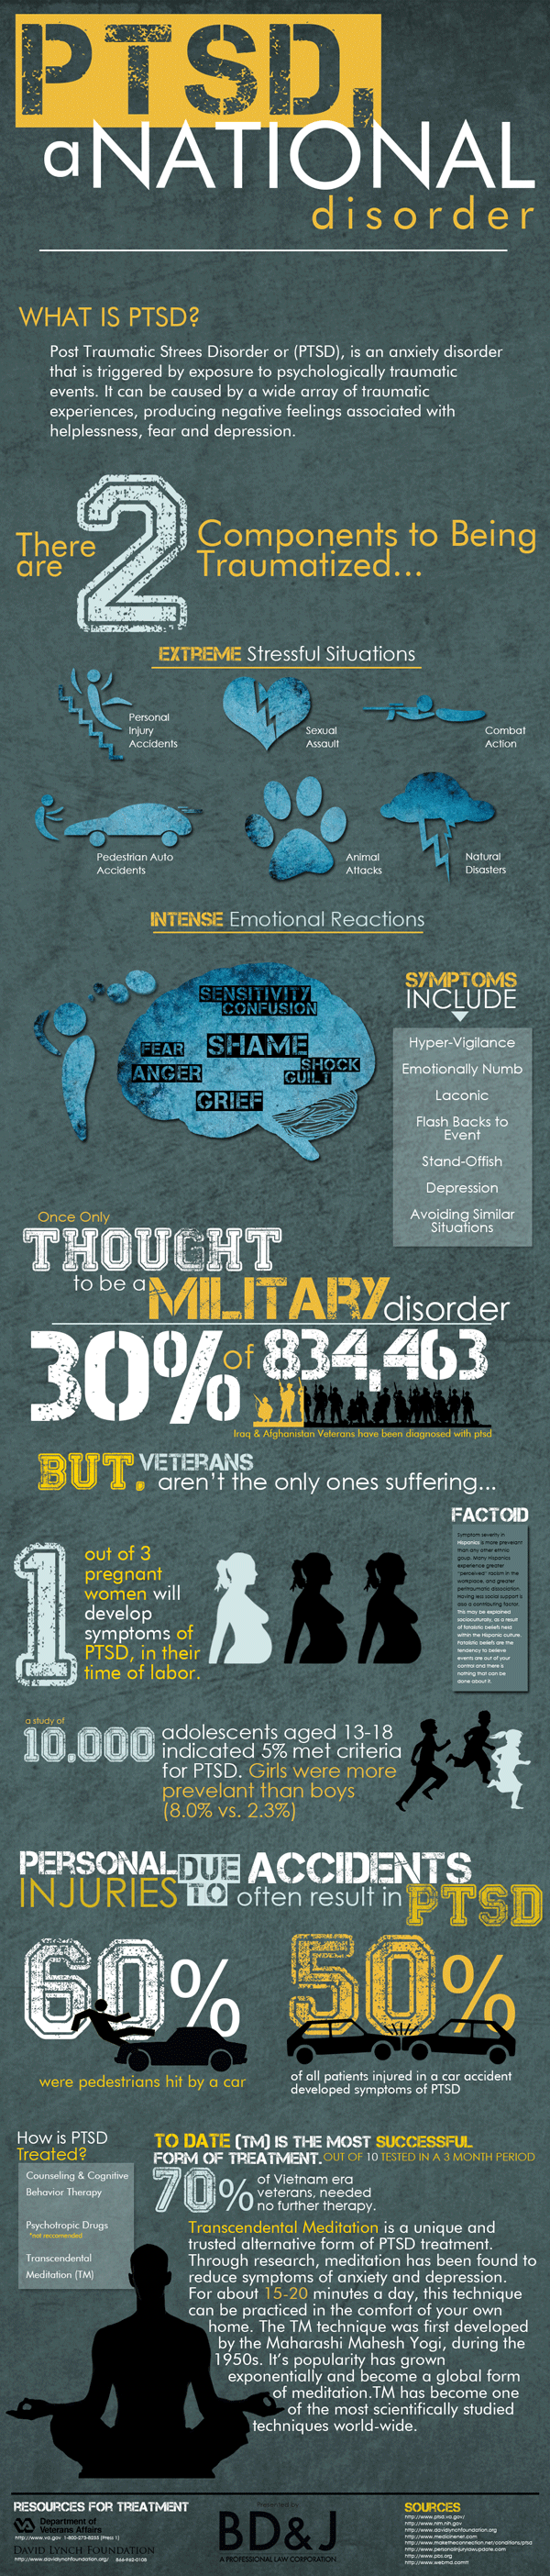 Post Traumatic Stress Disorder - PTSD - Infographic